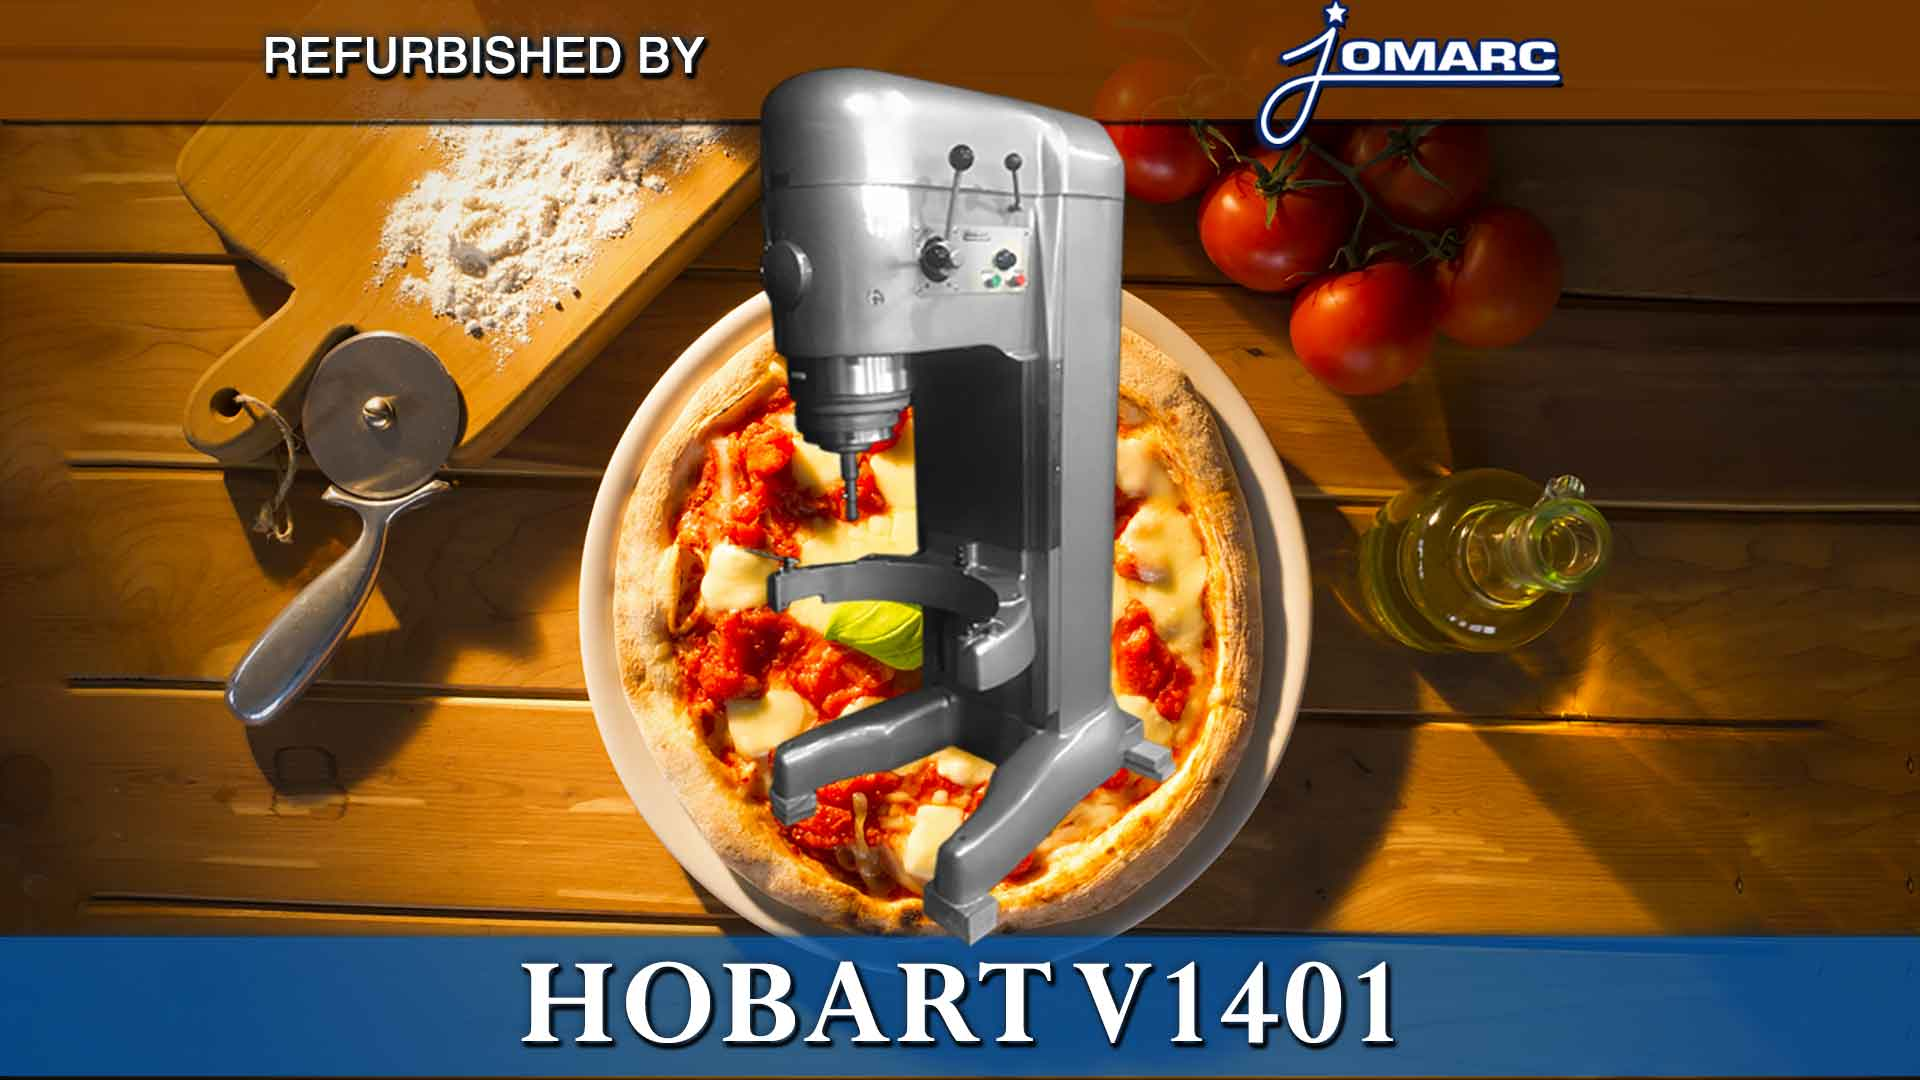 REFURBISHED HOBART MIXER v-1401 BY JOMARC